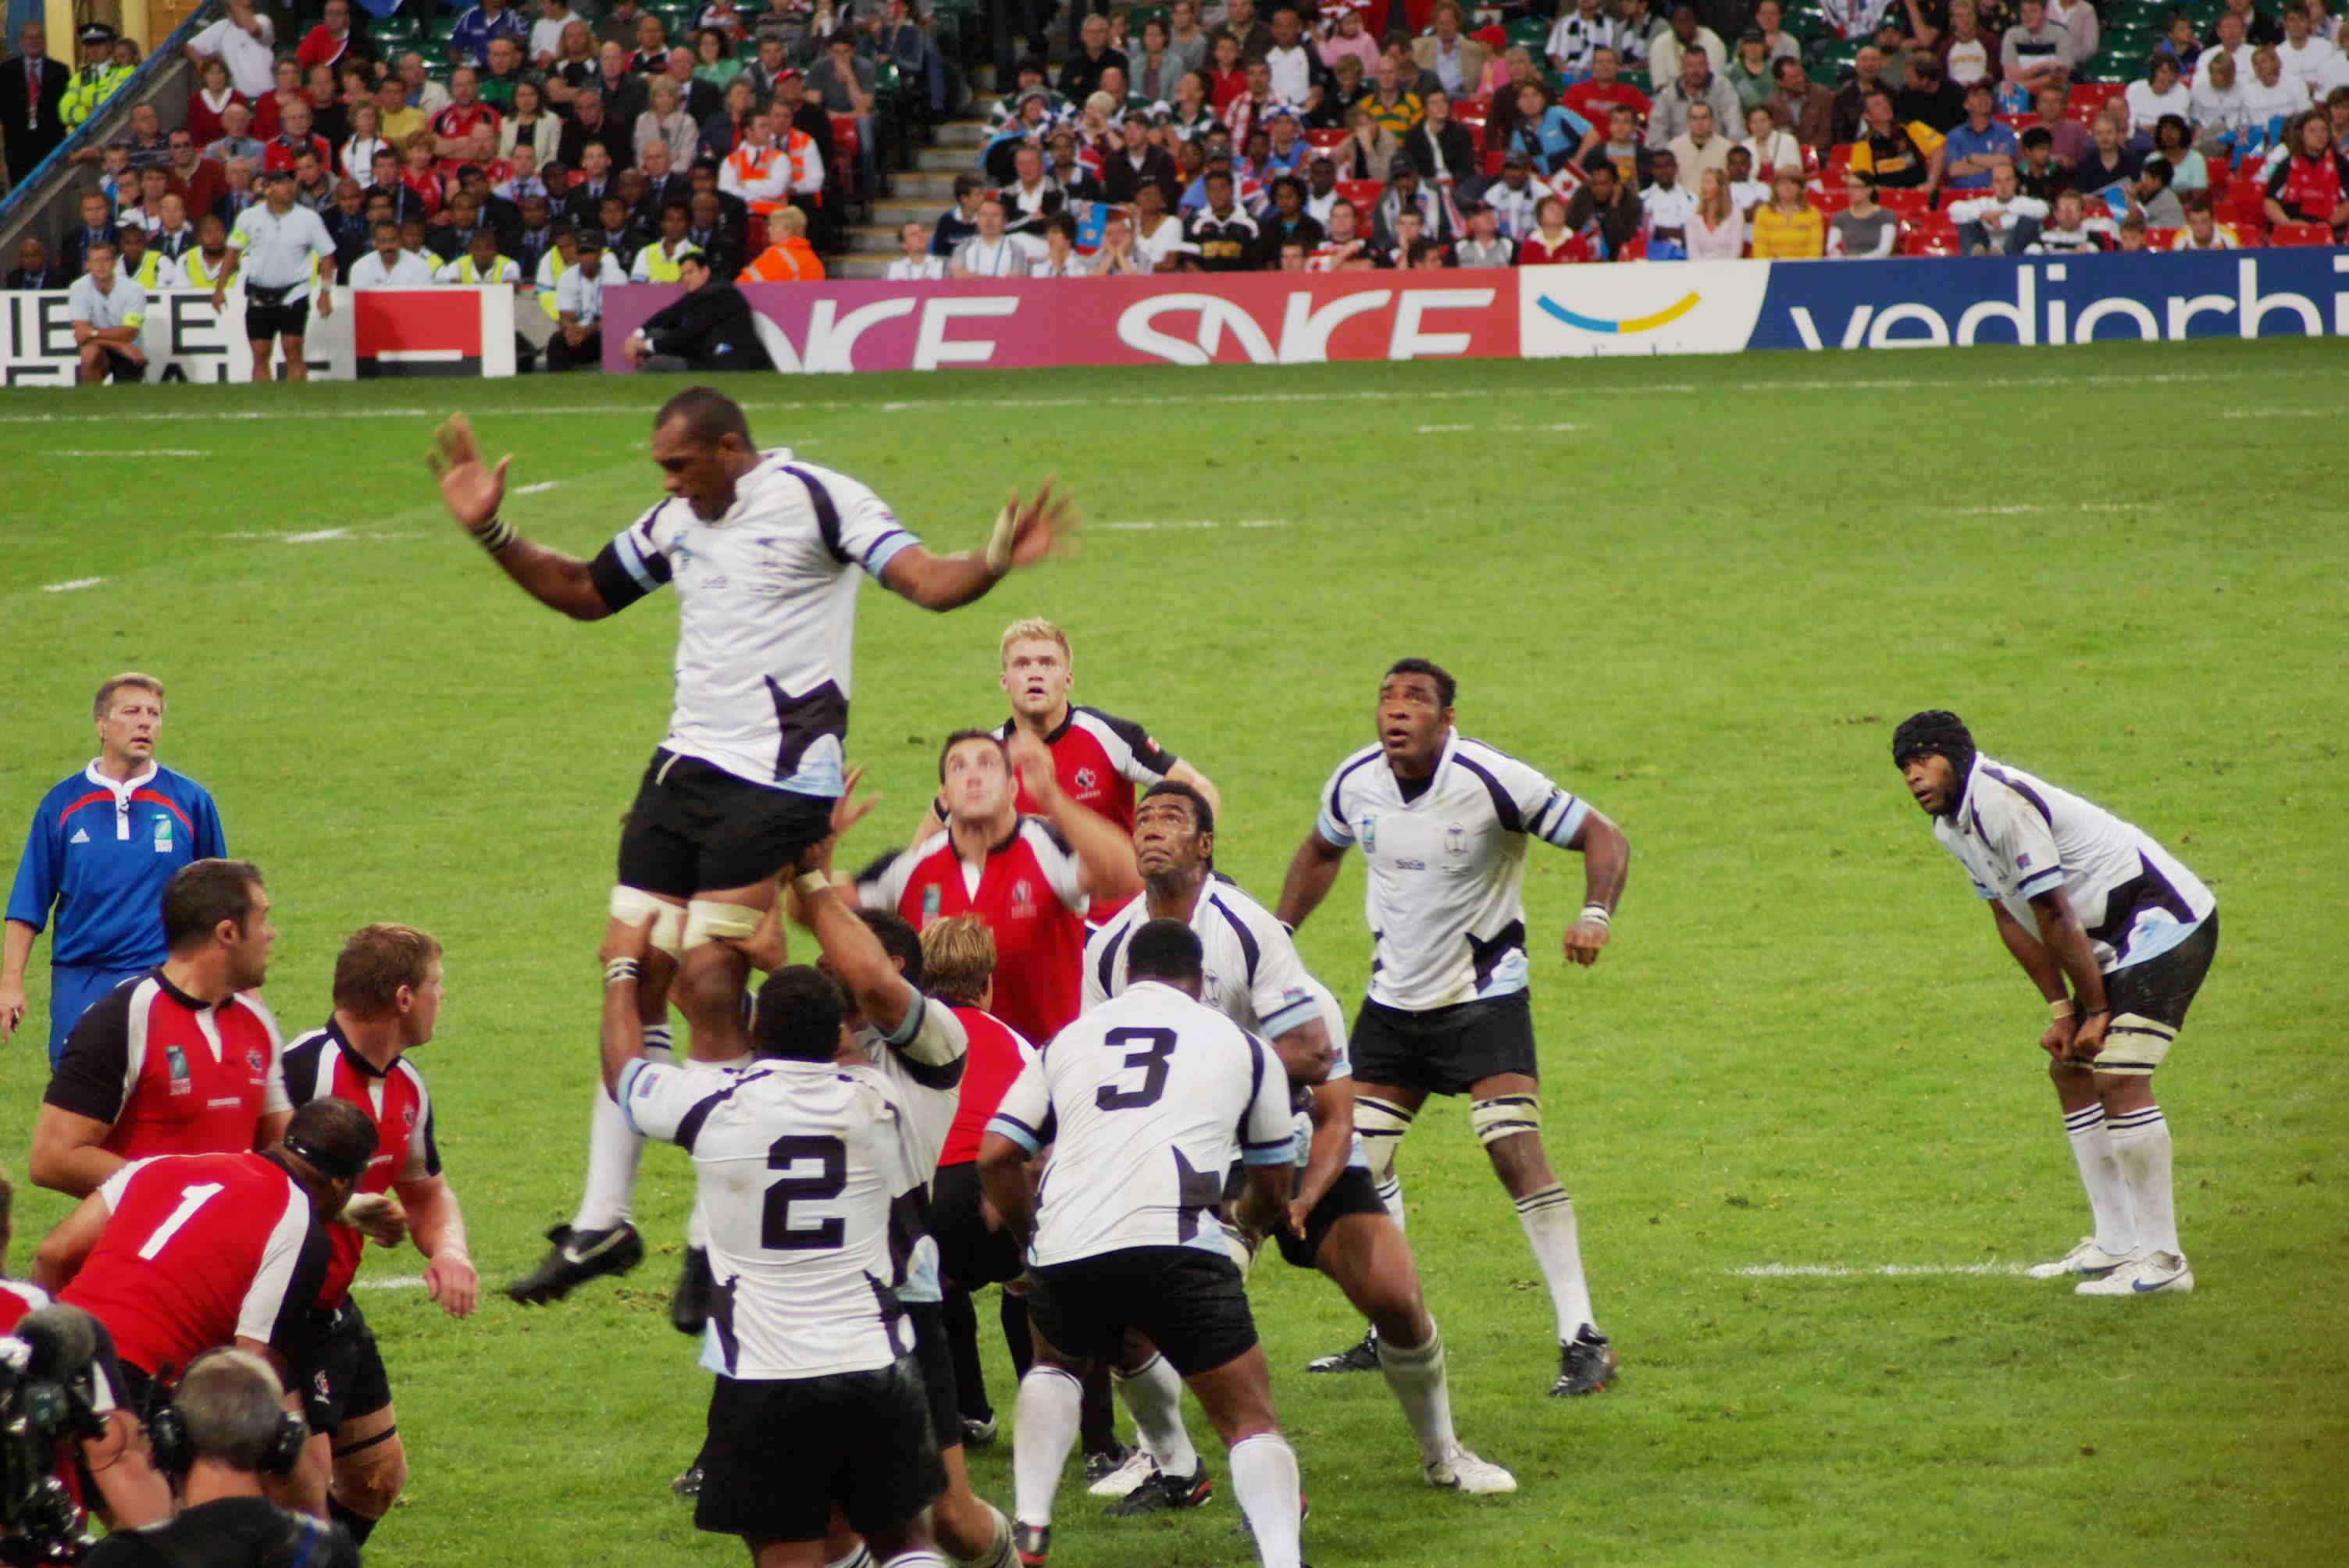 The Fiji national rugby union team during the 2007 Rugby World Cup playing against Canada.